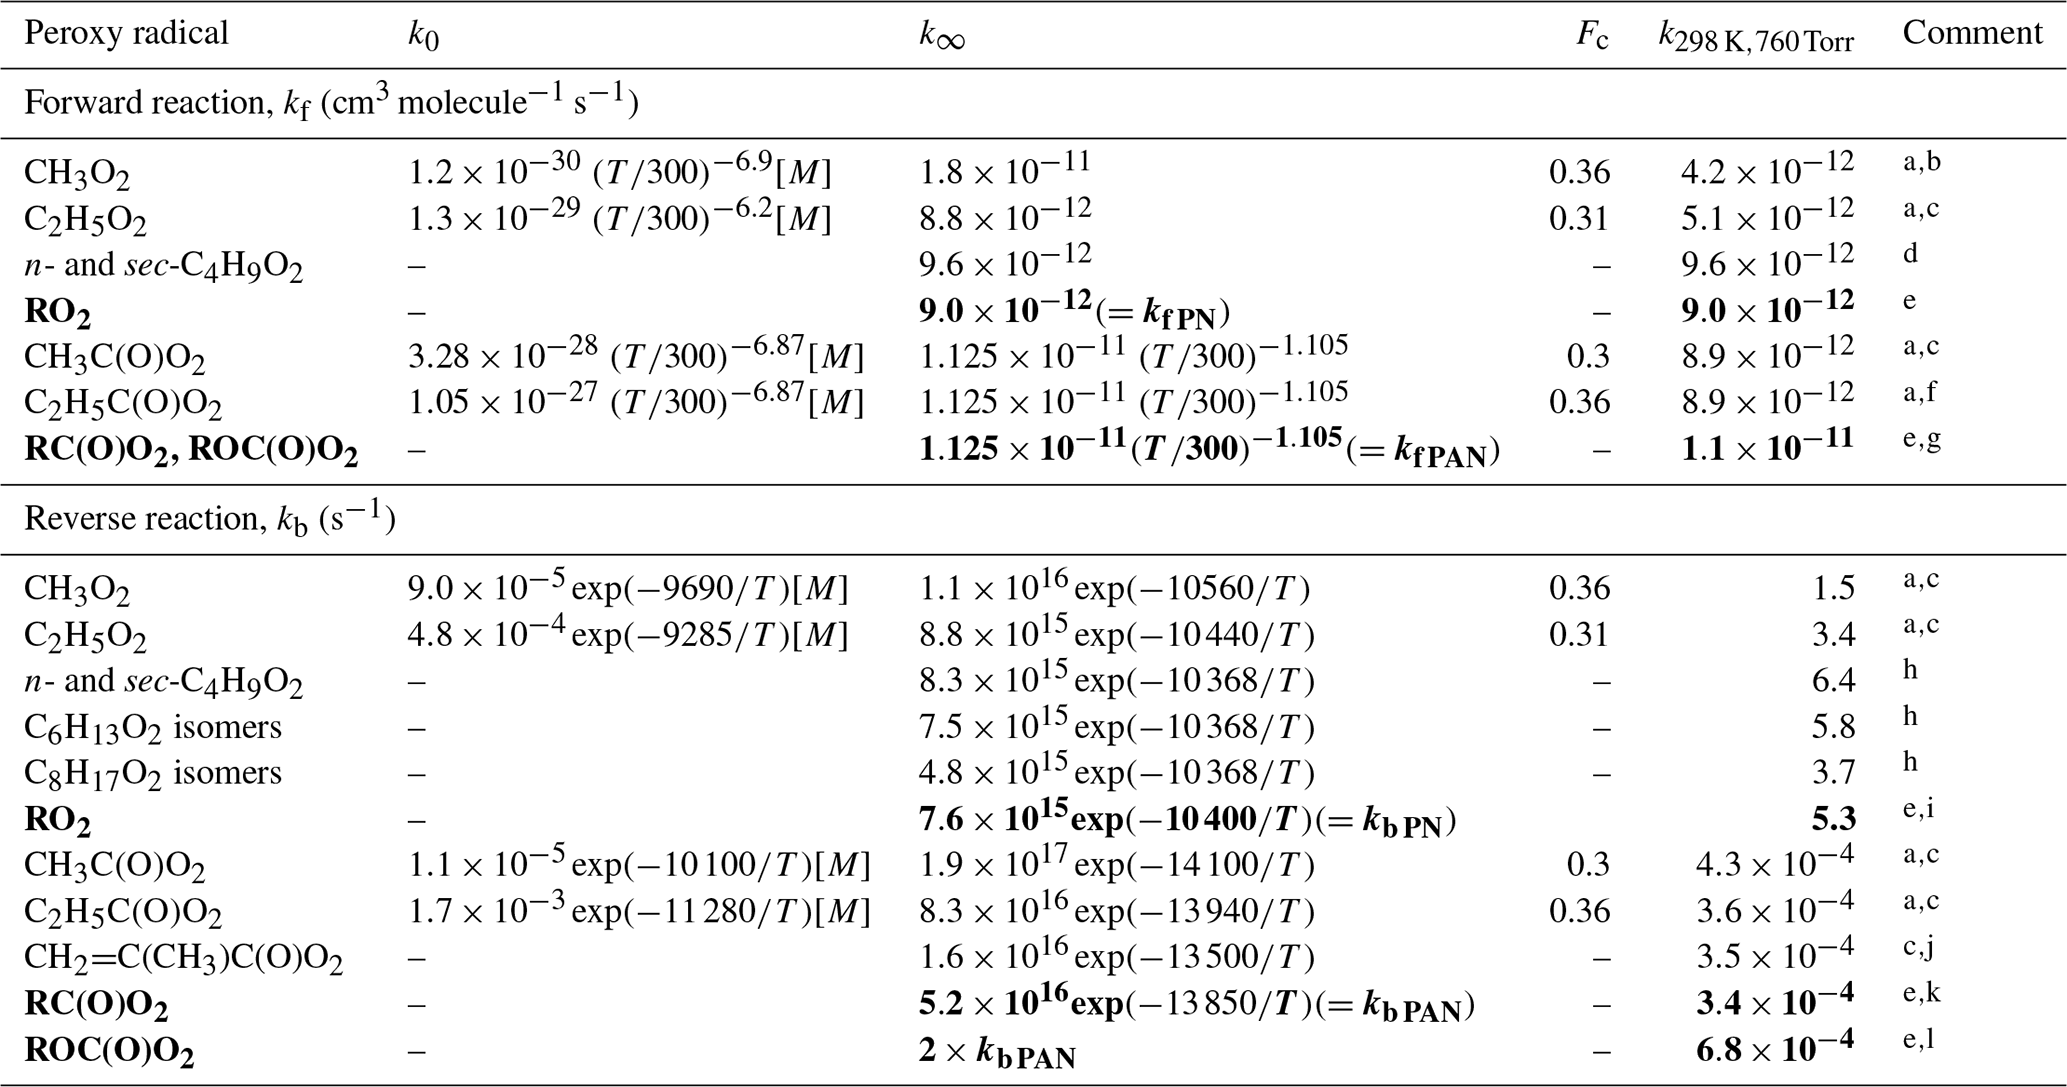 ACP - Estimation of rate coefficients and branching ratios